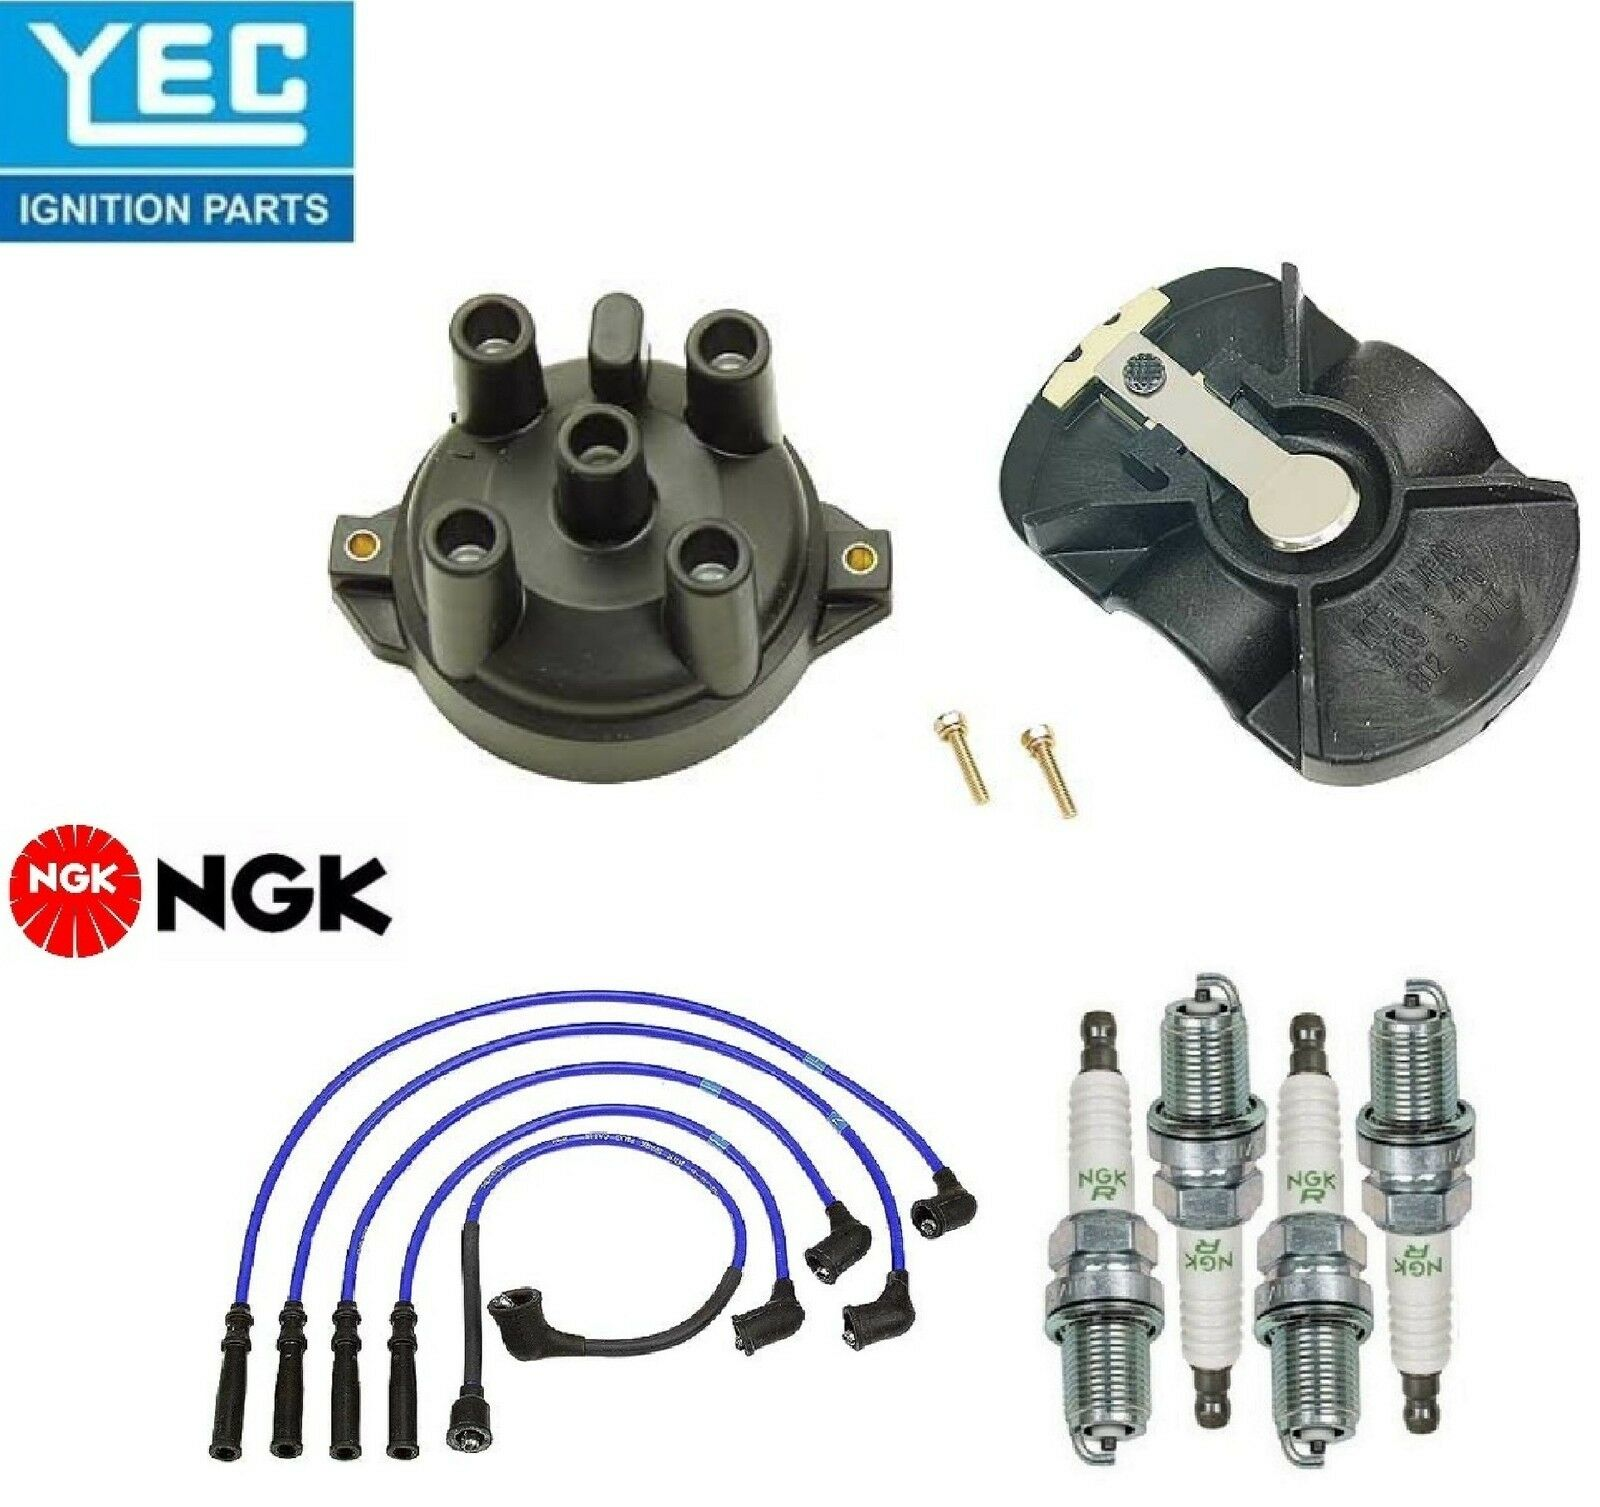 Yec & NGK Ignition Kit Distri.cap Rotor Plugs Wire for MAZDA Protege ...